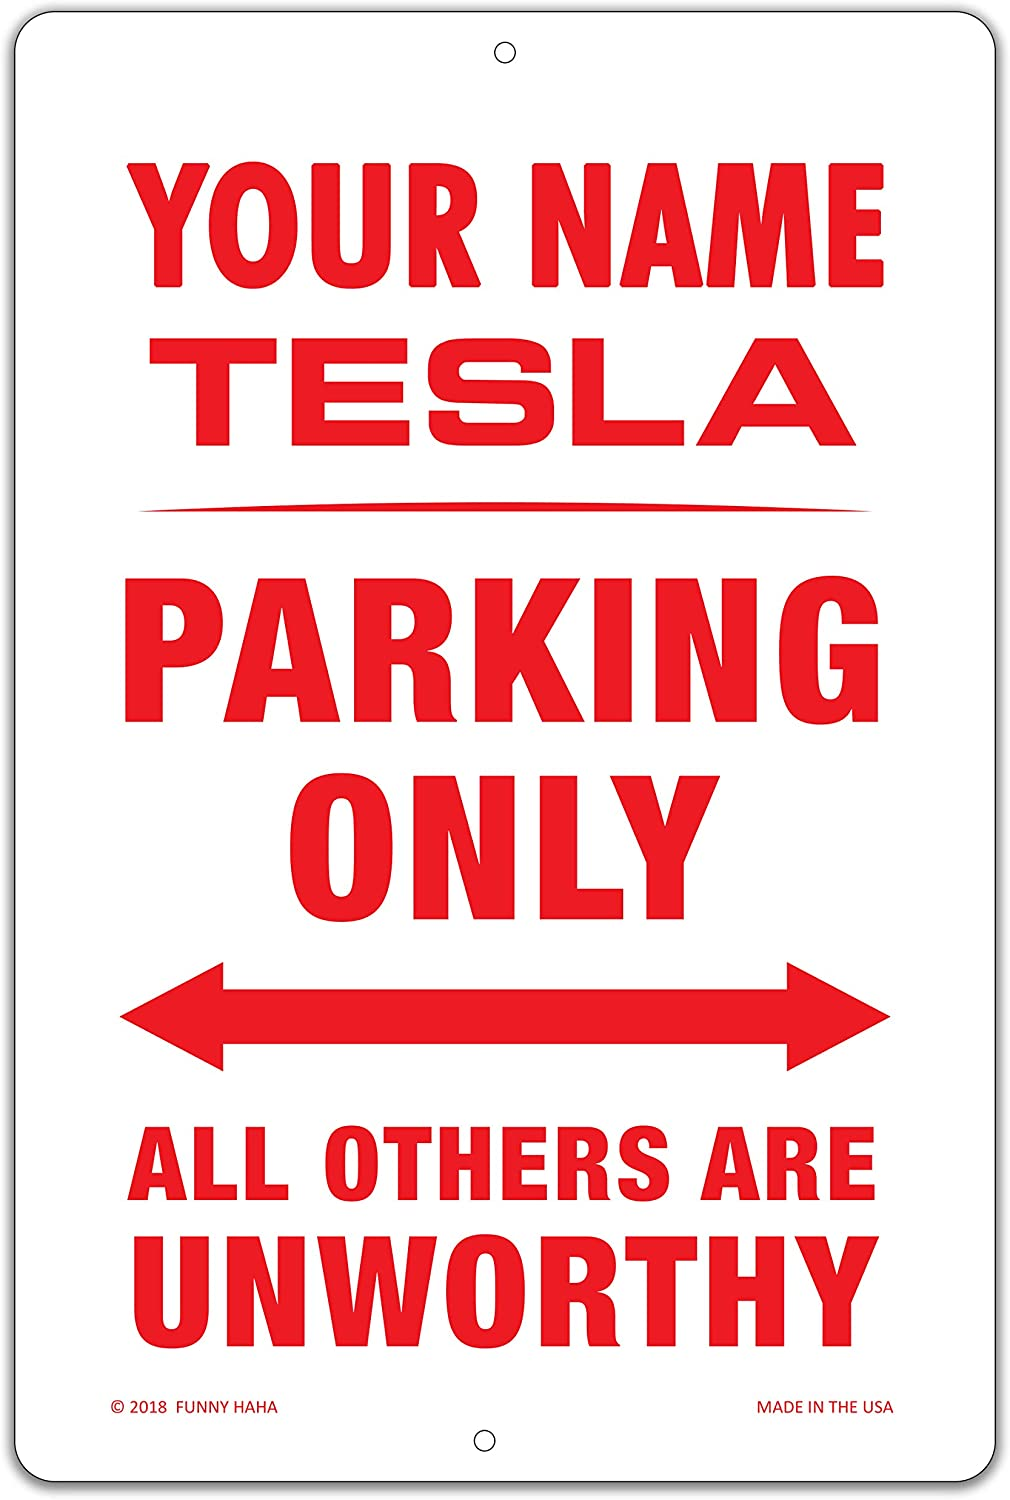 Funny HAHA USA Tesla Parking Garage Great interest Person Aluminum New product type Sign 18 x 12